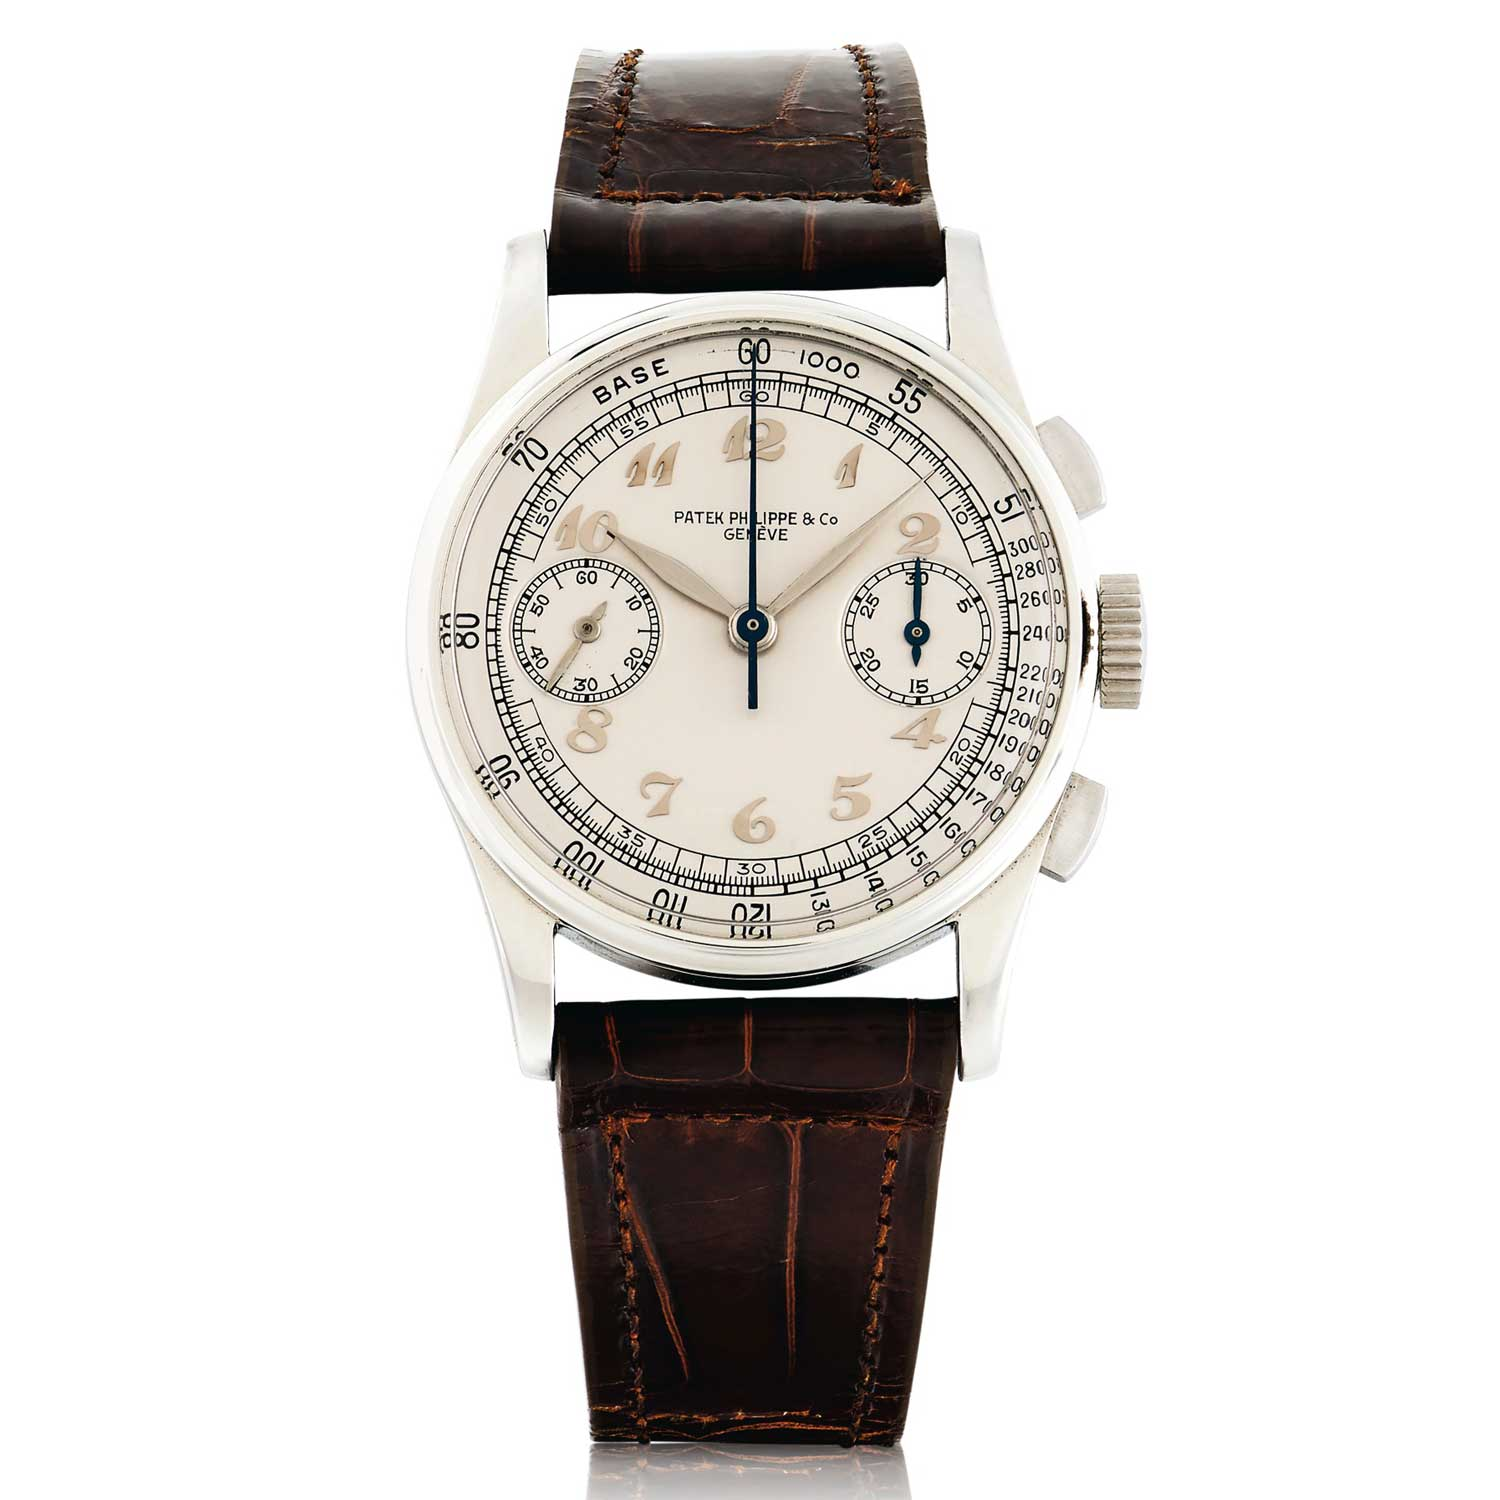 Lot 175: Patek Philippe REF 130 A rare and highly attractive Stainless Steel Chronograph Wristwatch with Breguet Numerals made in 1940